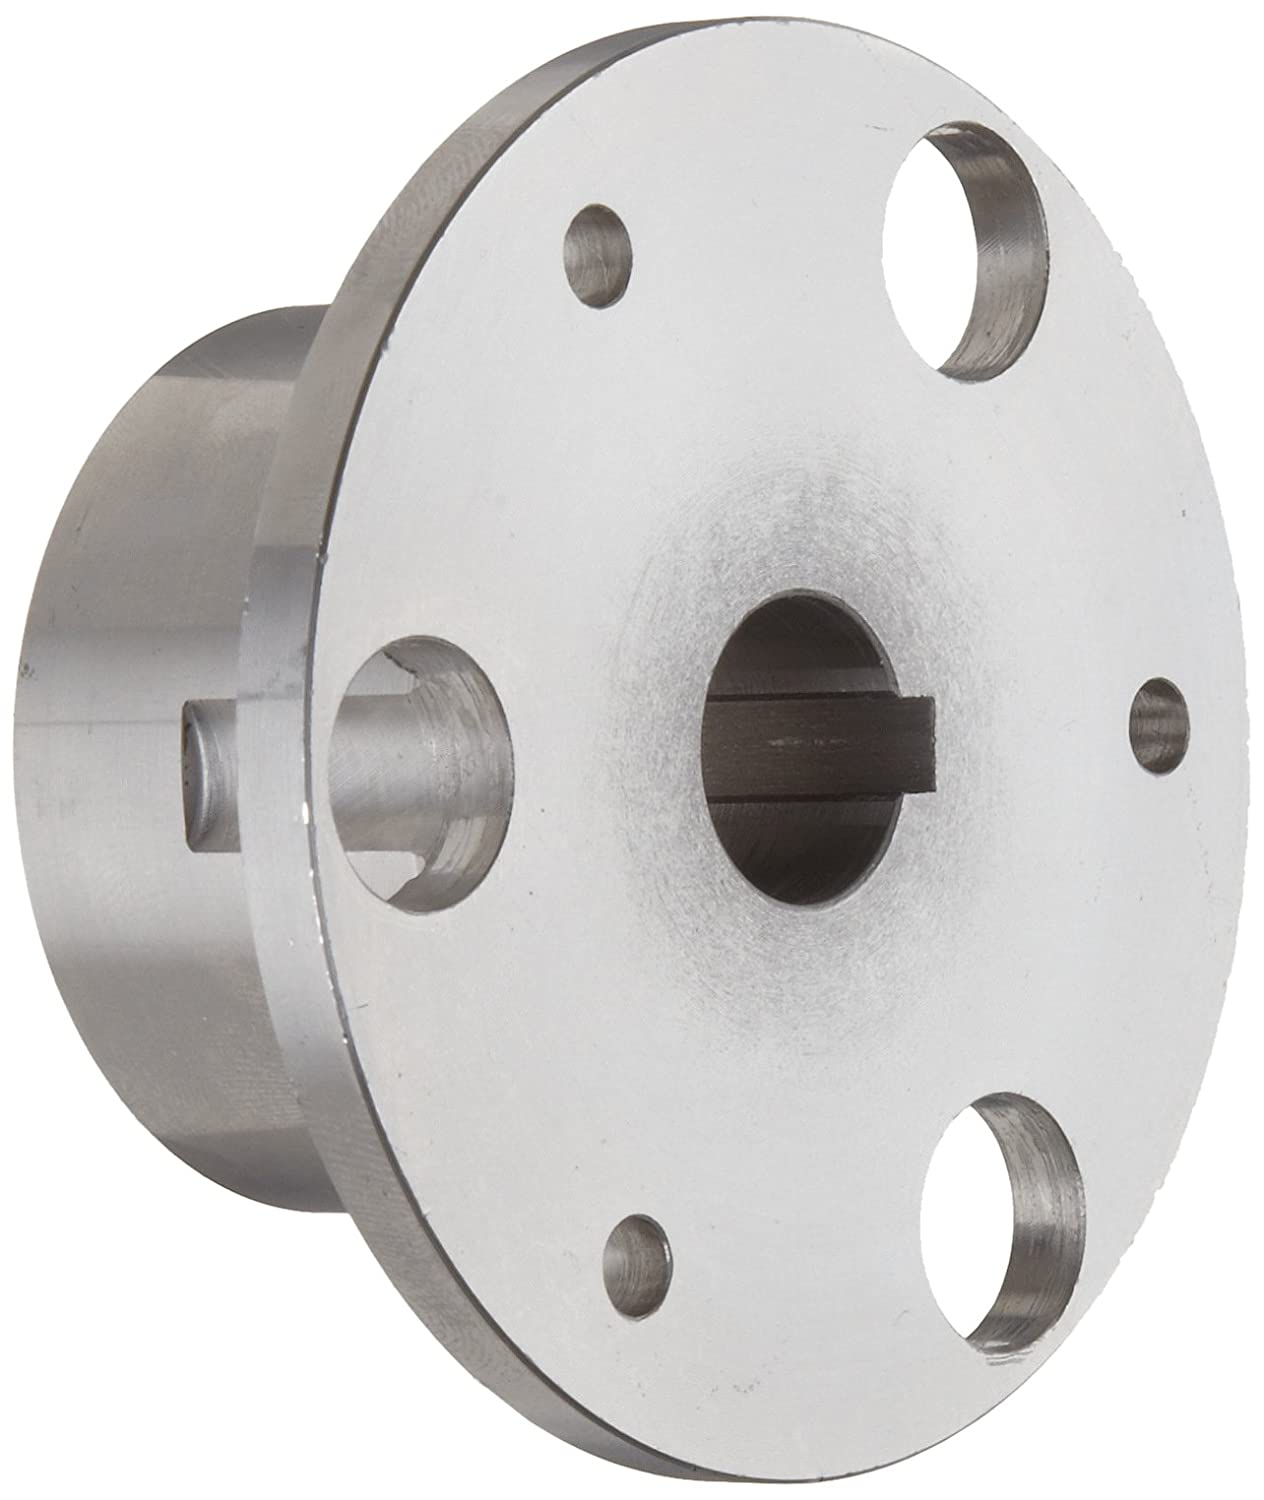 Lovejoy 97641 Size SX132-6 Industrial Coupling Hub Metric 8.97 Overall Coupling Length 5840 Maximum Unbalanced RPM 5.2 OD 10 mm x 3.3 mm Keyway with 2 Setscrew 32.025 mm Bore 9700 in-lbs Nominal Torque